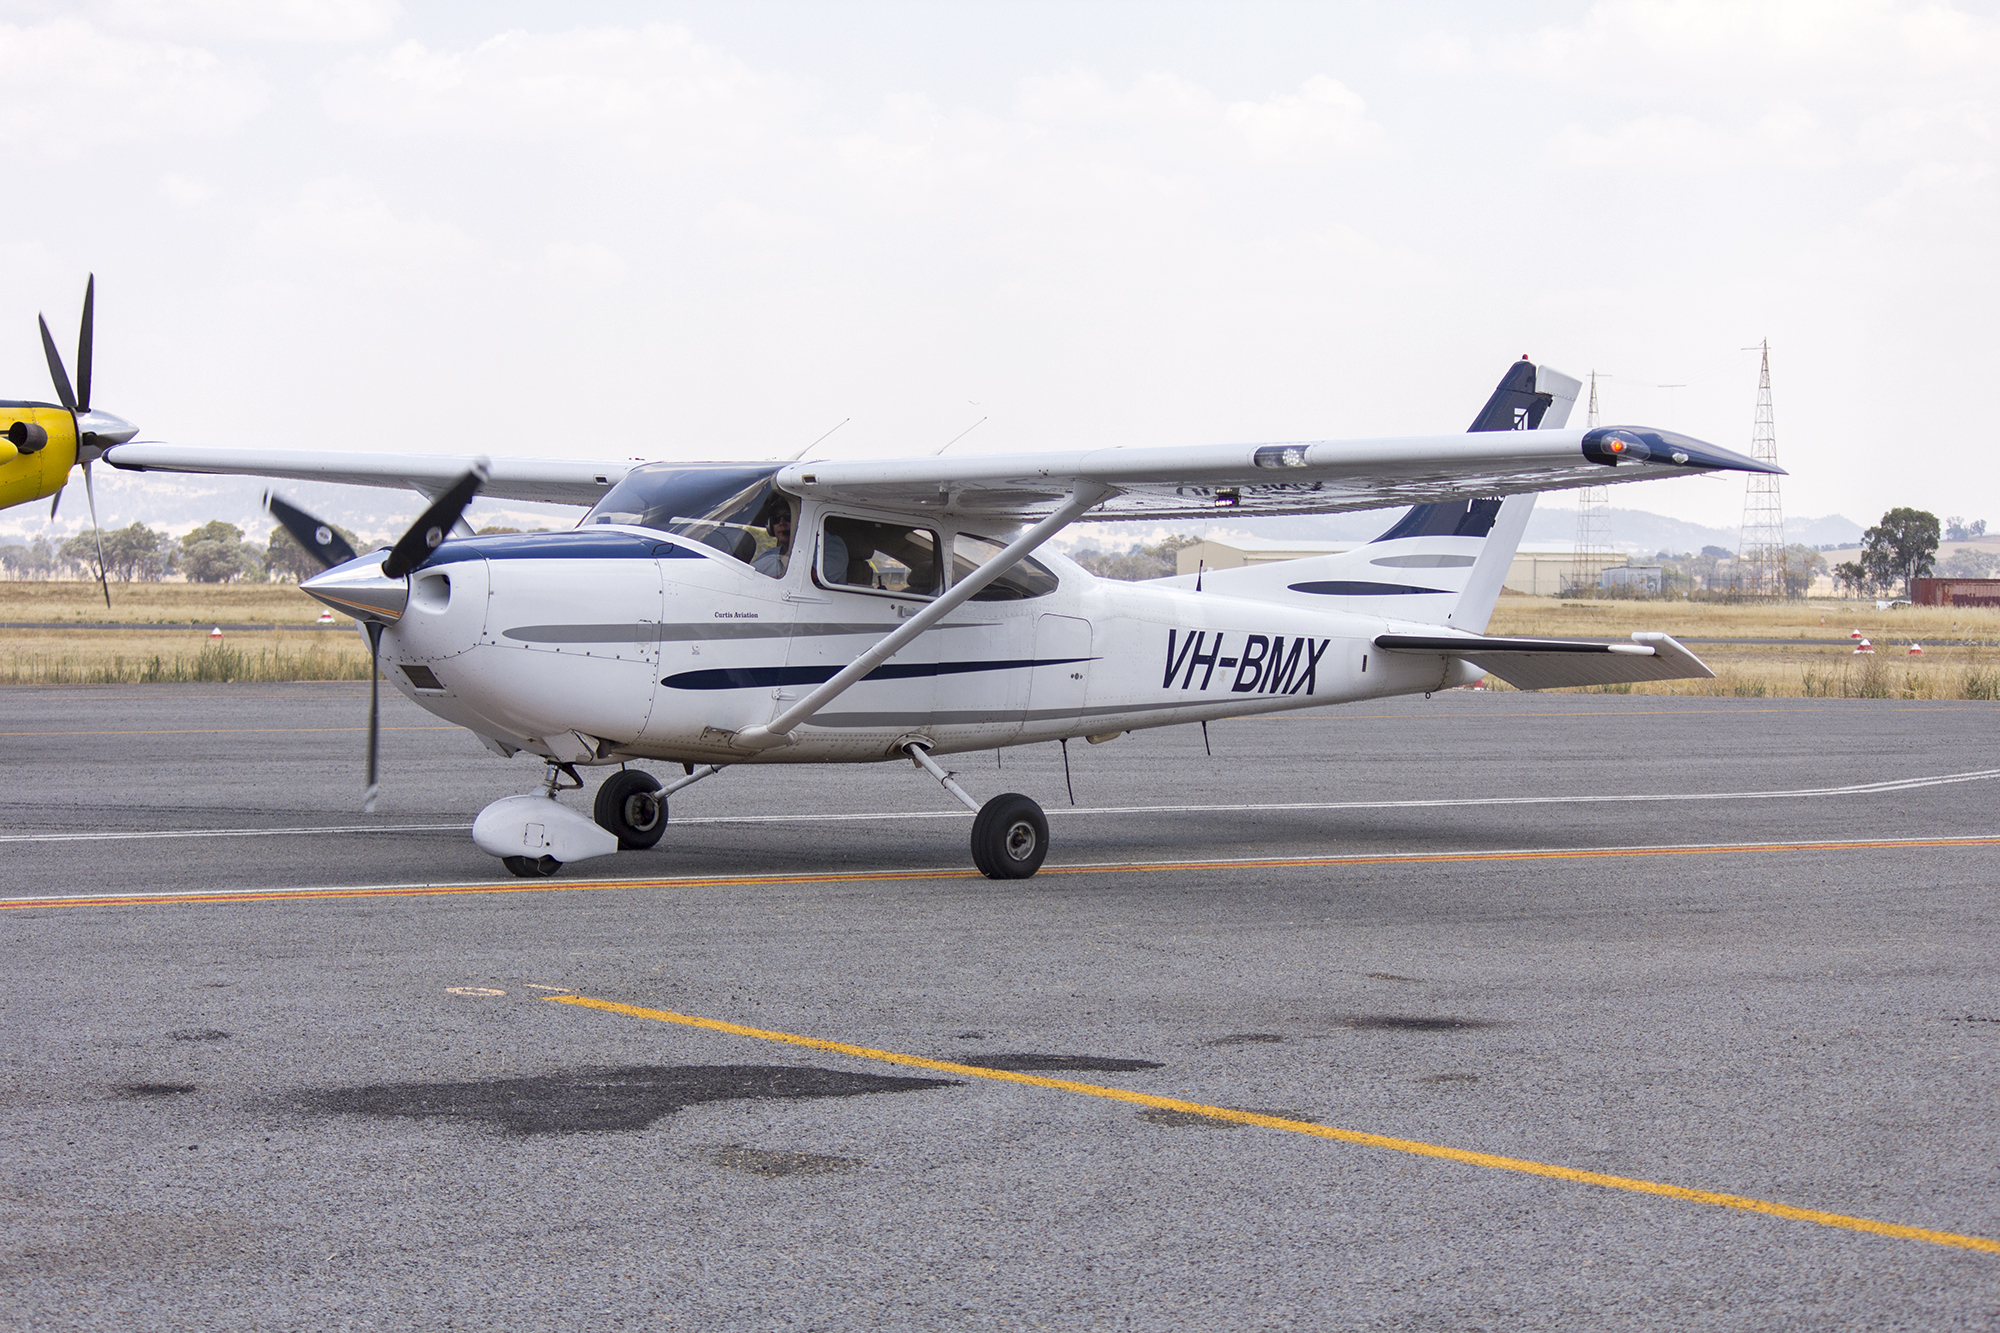 File:Curtis Aviation (VH-BMX) Cessna 182T Skylane taxiing at Wagga Wagga